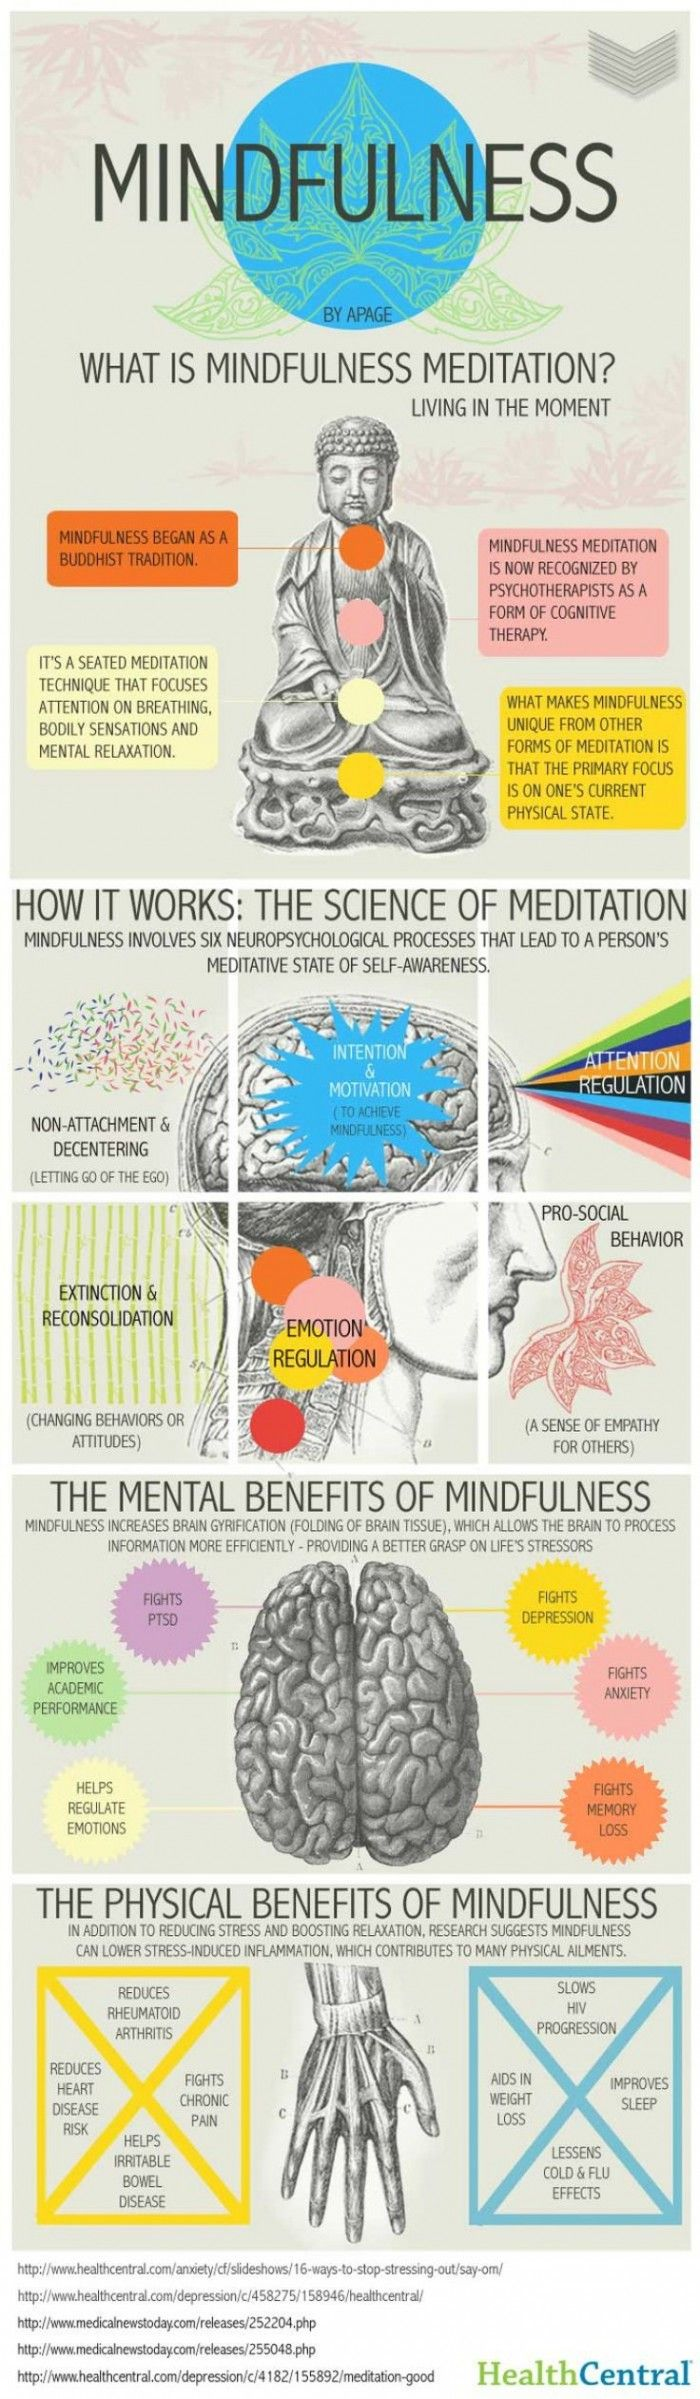 Benefits of Mindfulness (Meditation) | Lynn Hasselberger for Elephant Journal | #infographic #meditation #mindfulness: